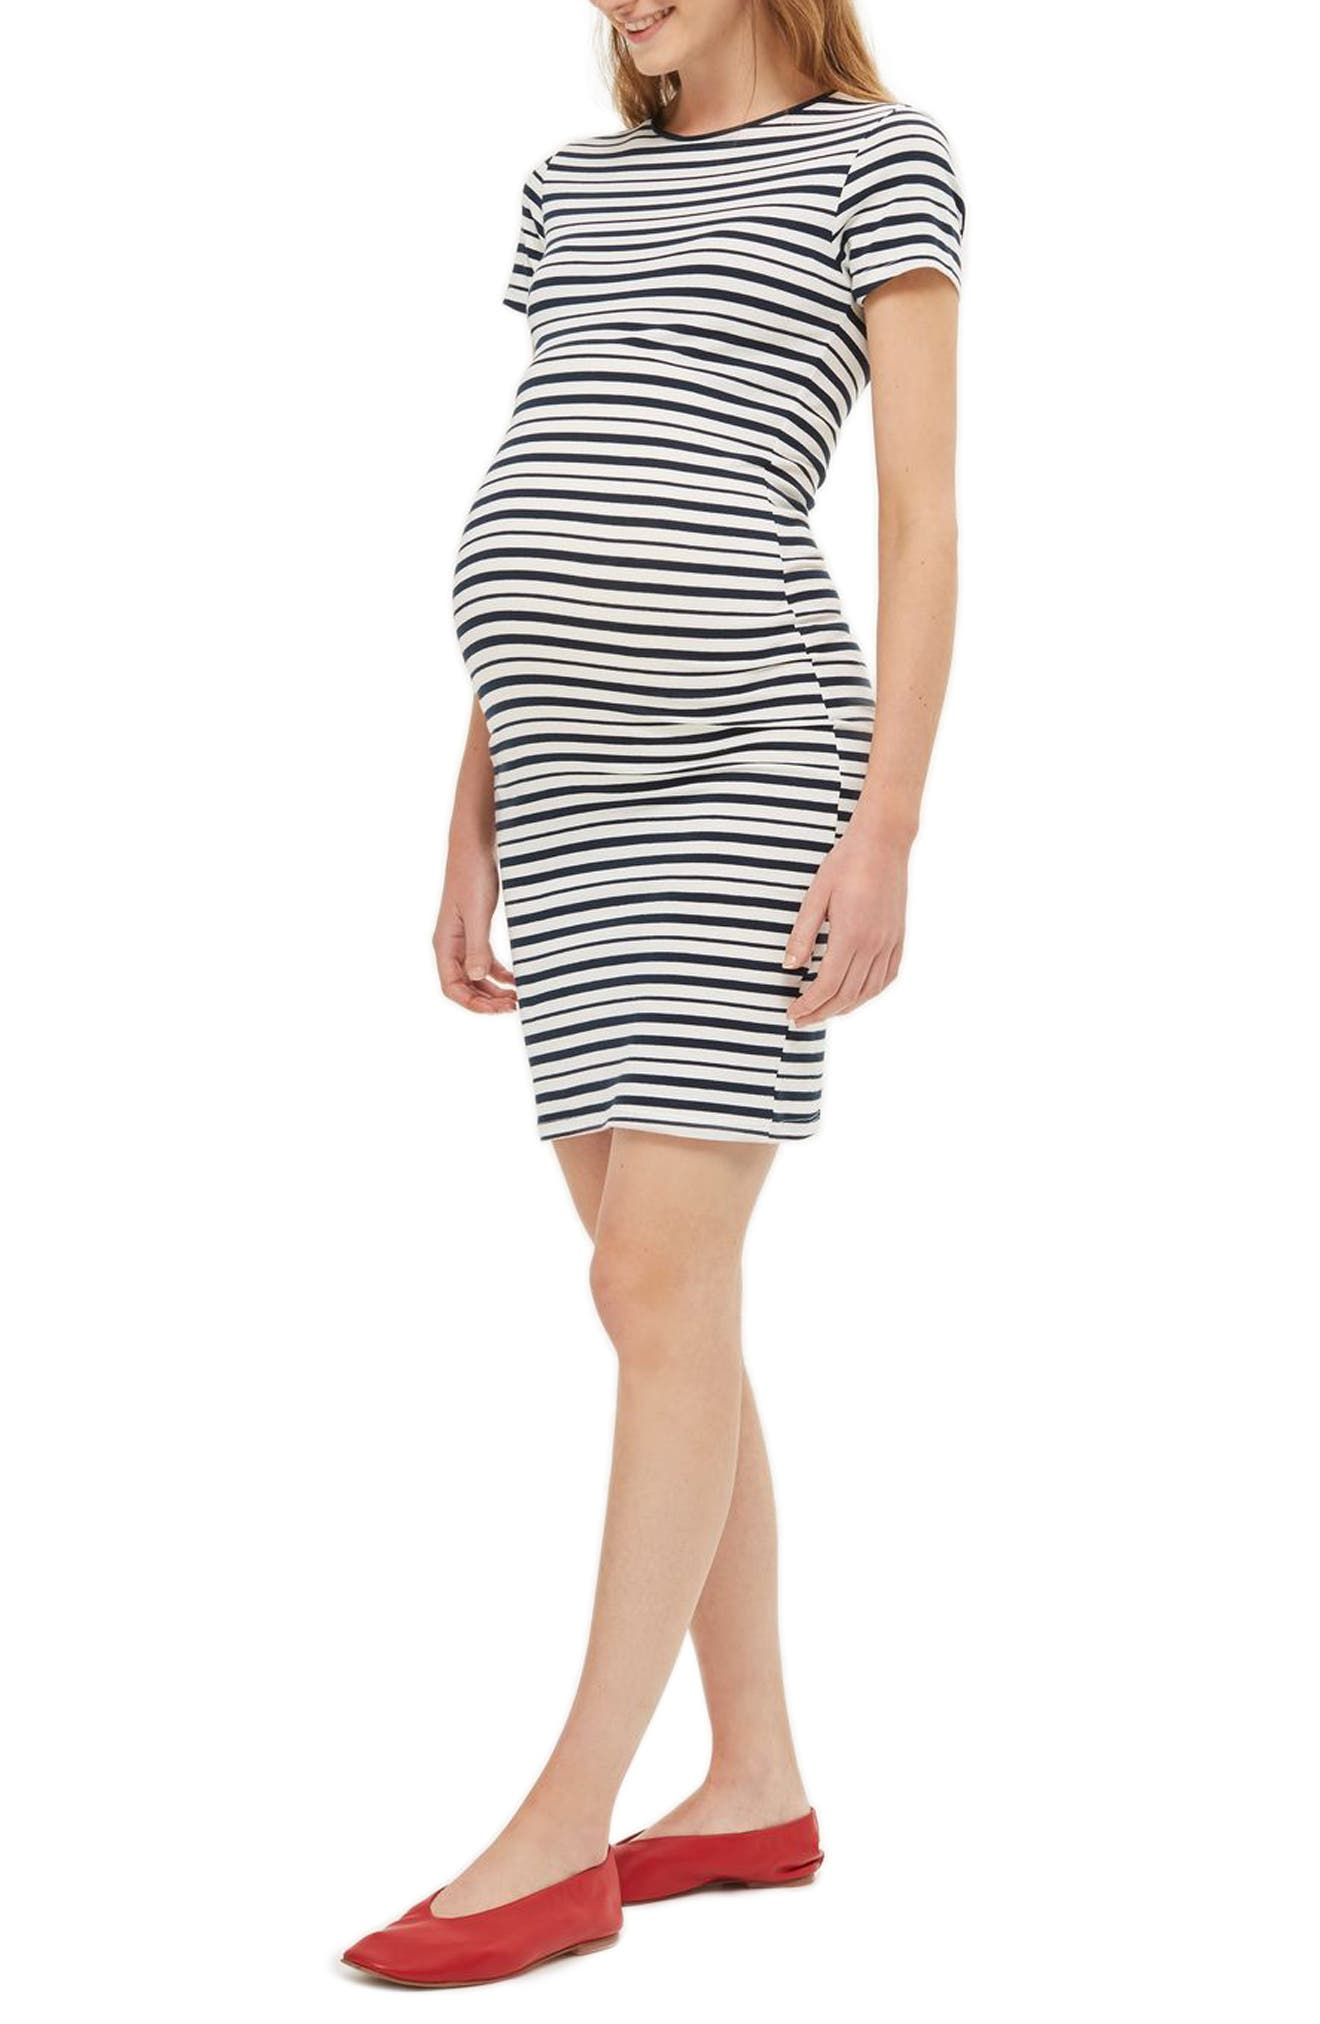 Topshop Stripe Maternity Body-Con Dress